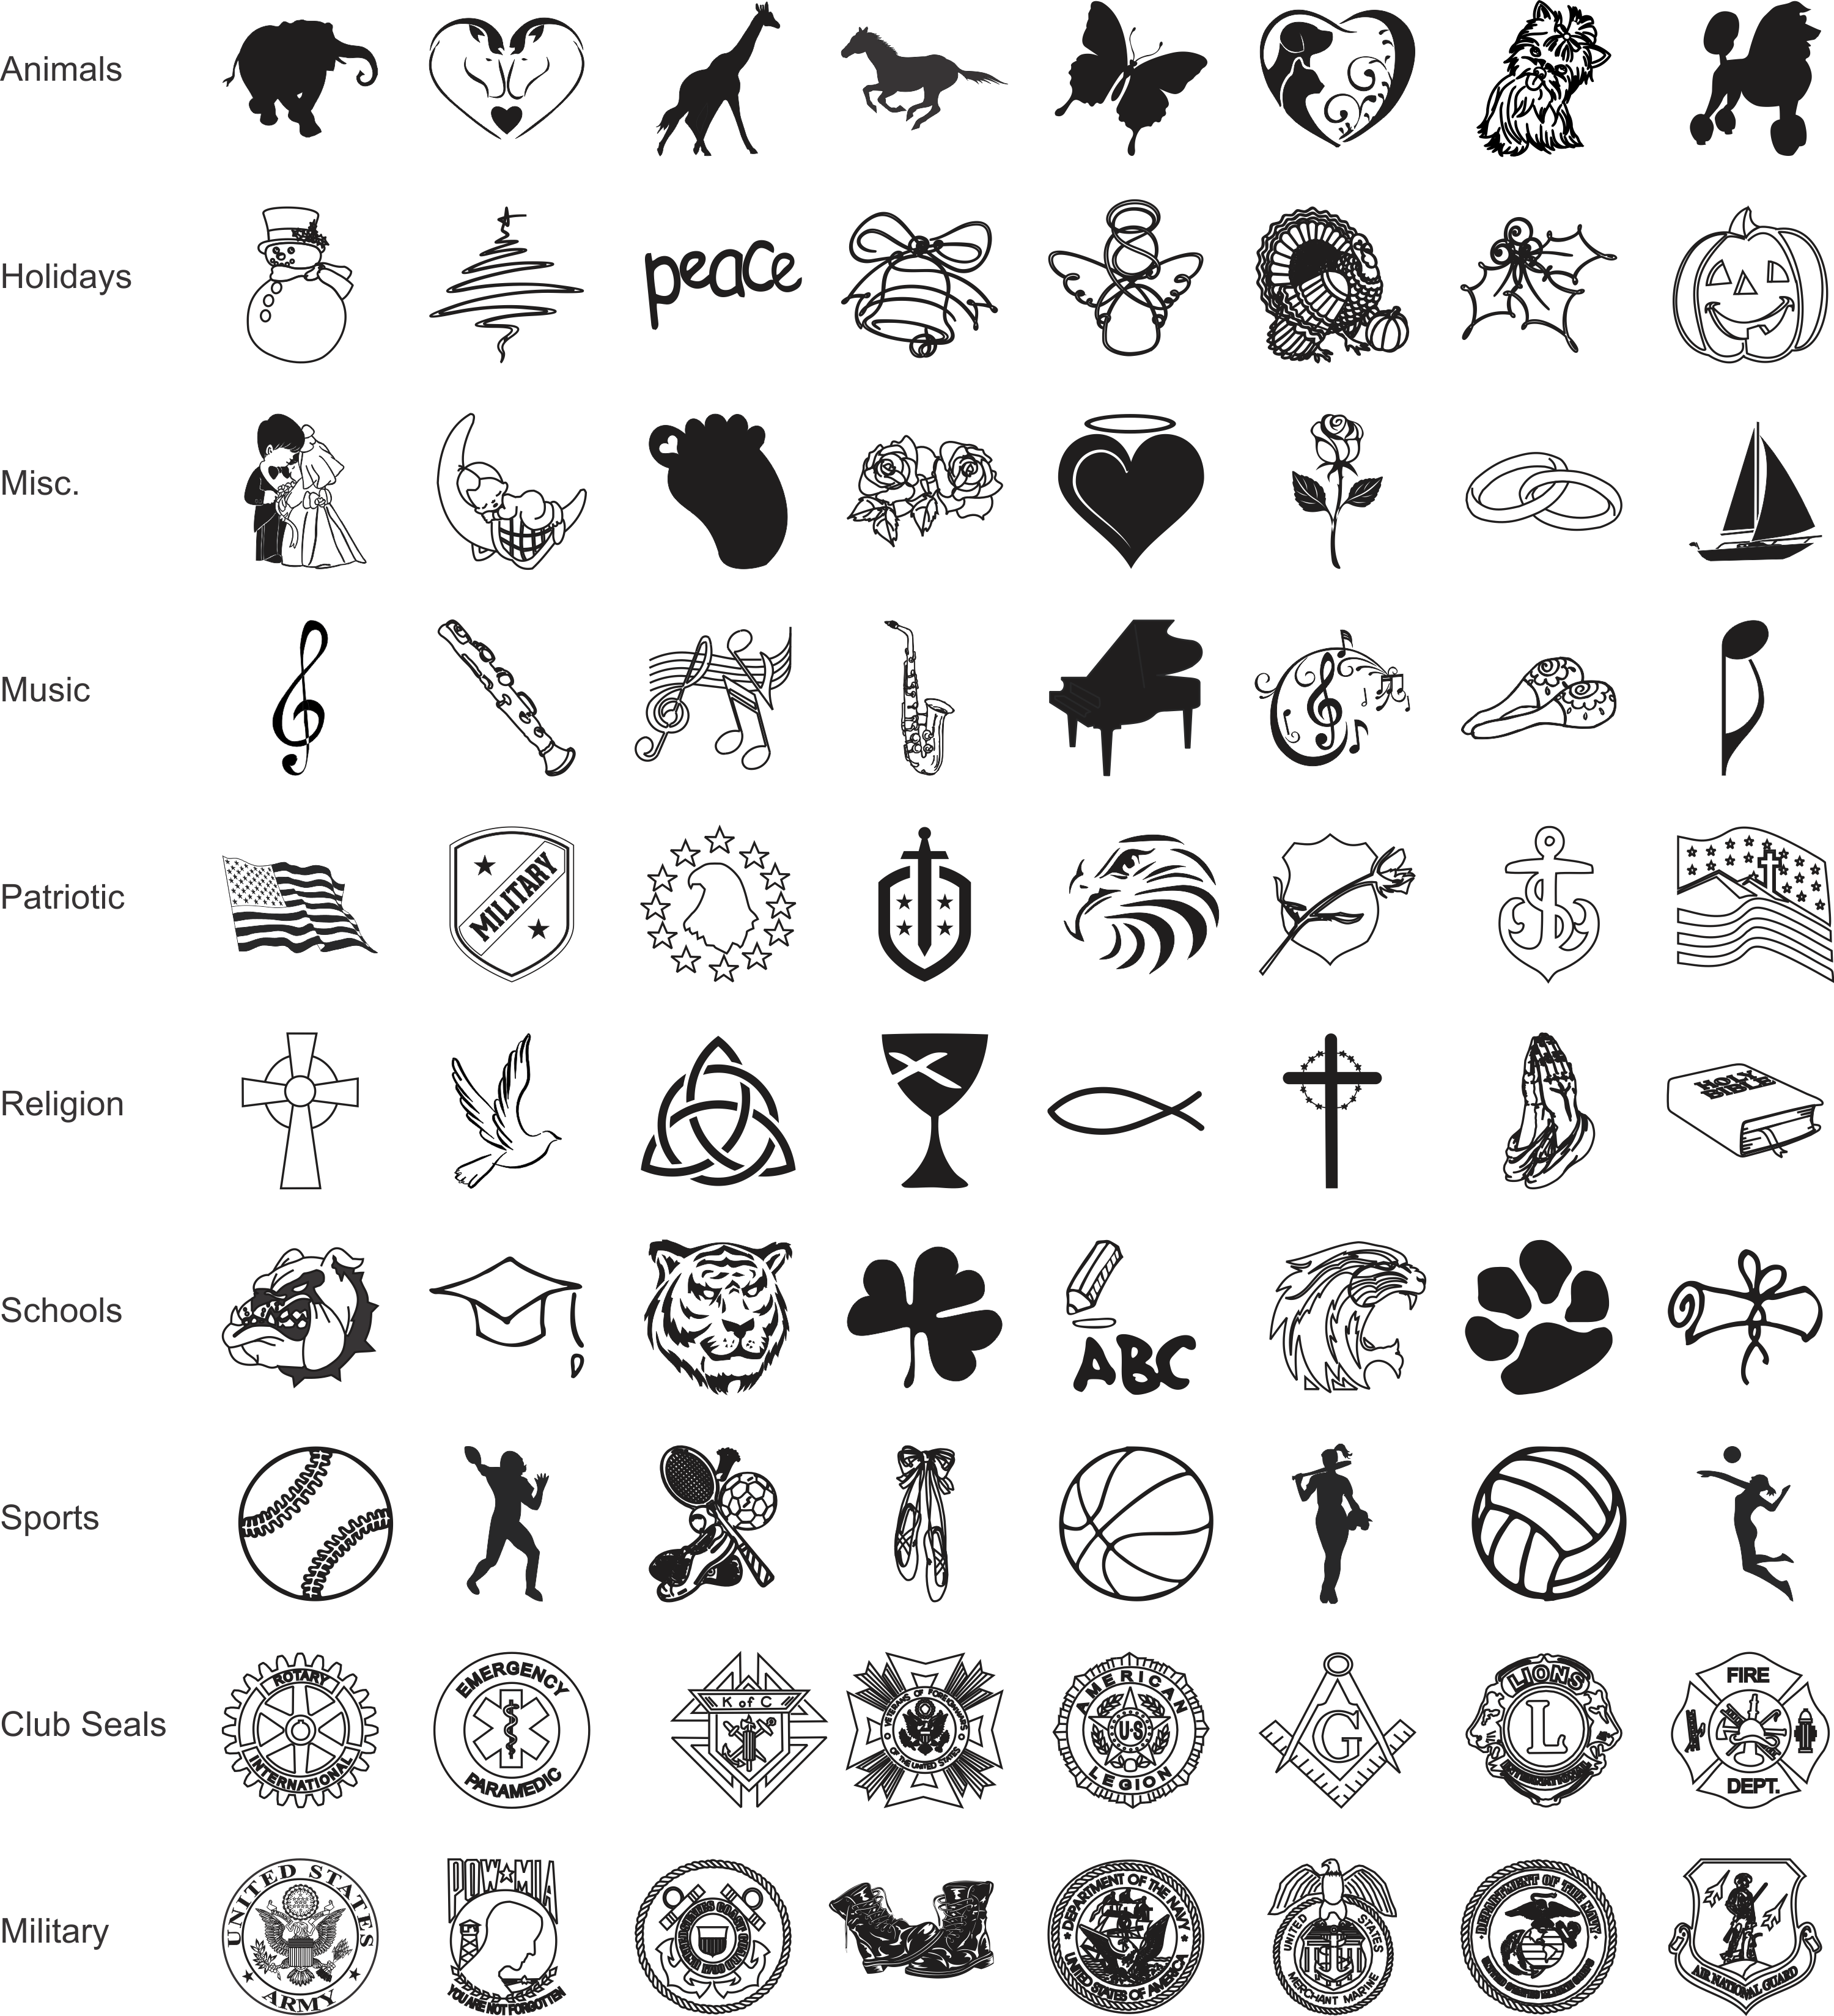 Free Engraving Cliparts, Download Free Clip Art, Free Clip Art on.